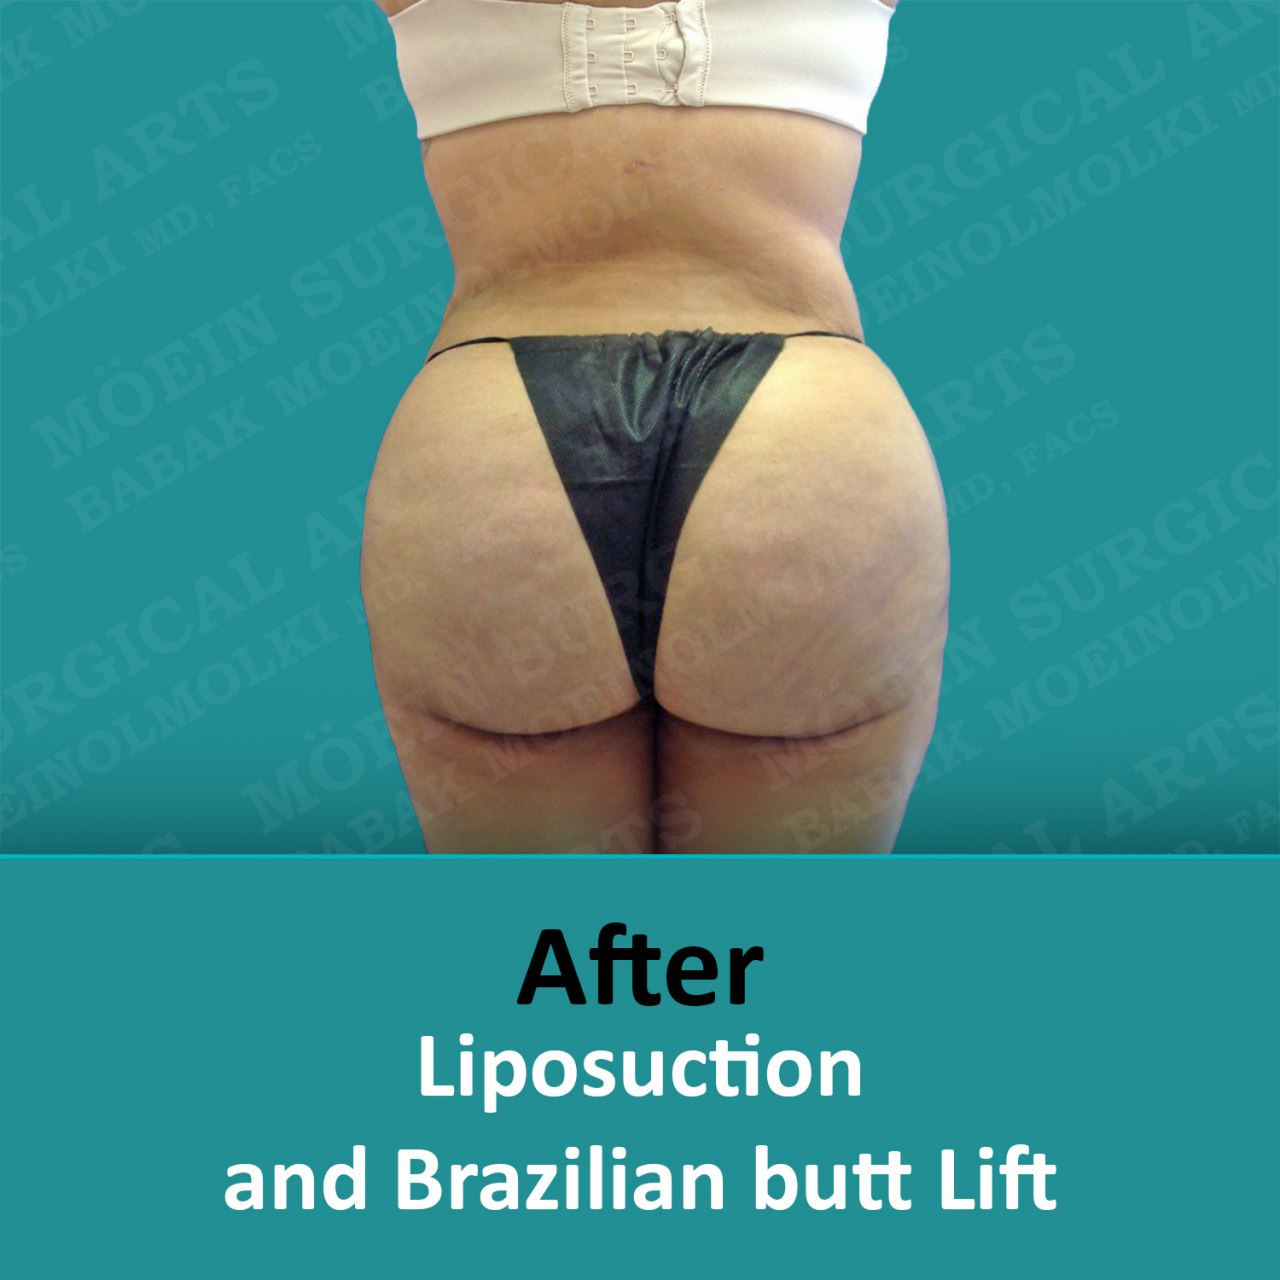 Liposuction and Brazilian butt lift after